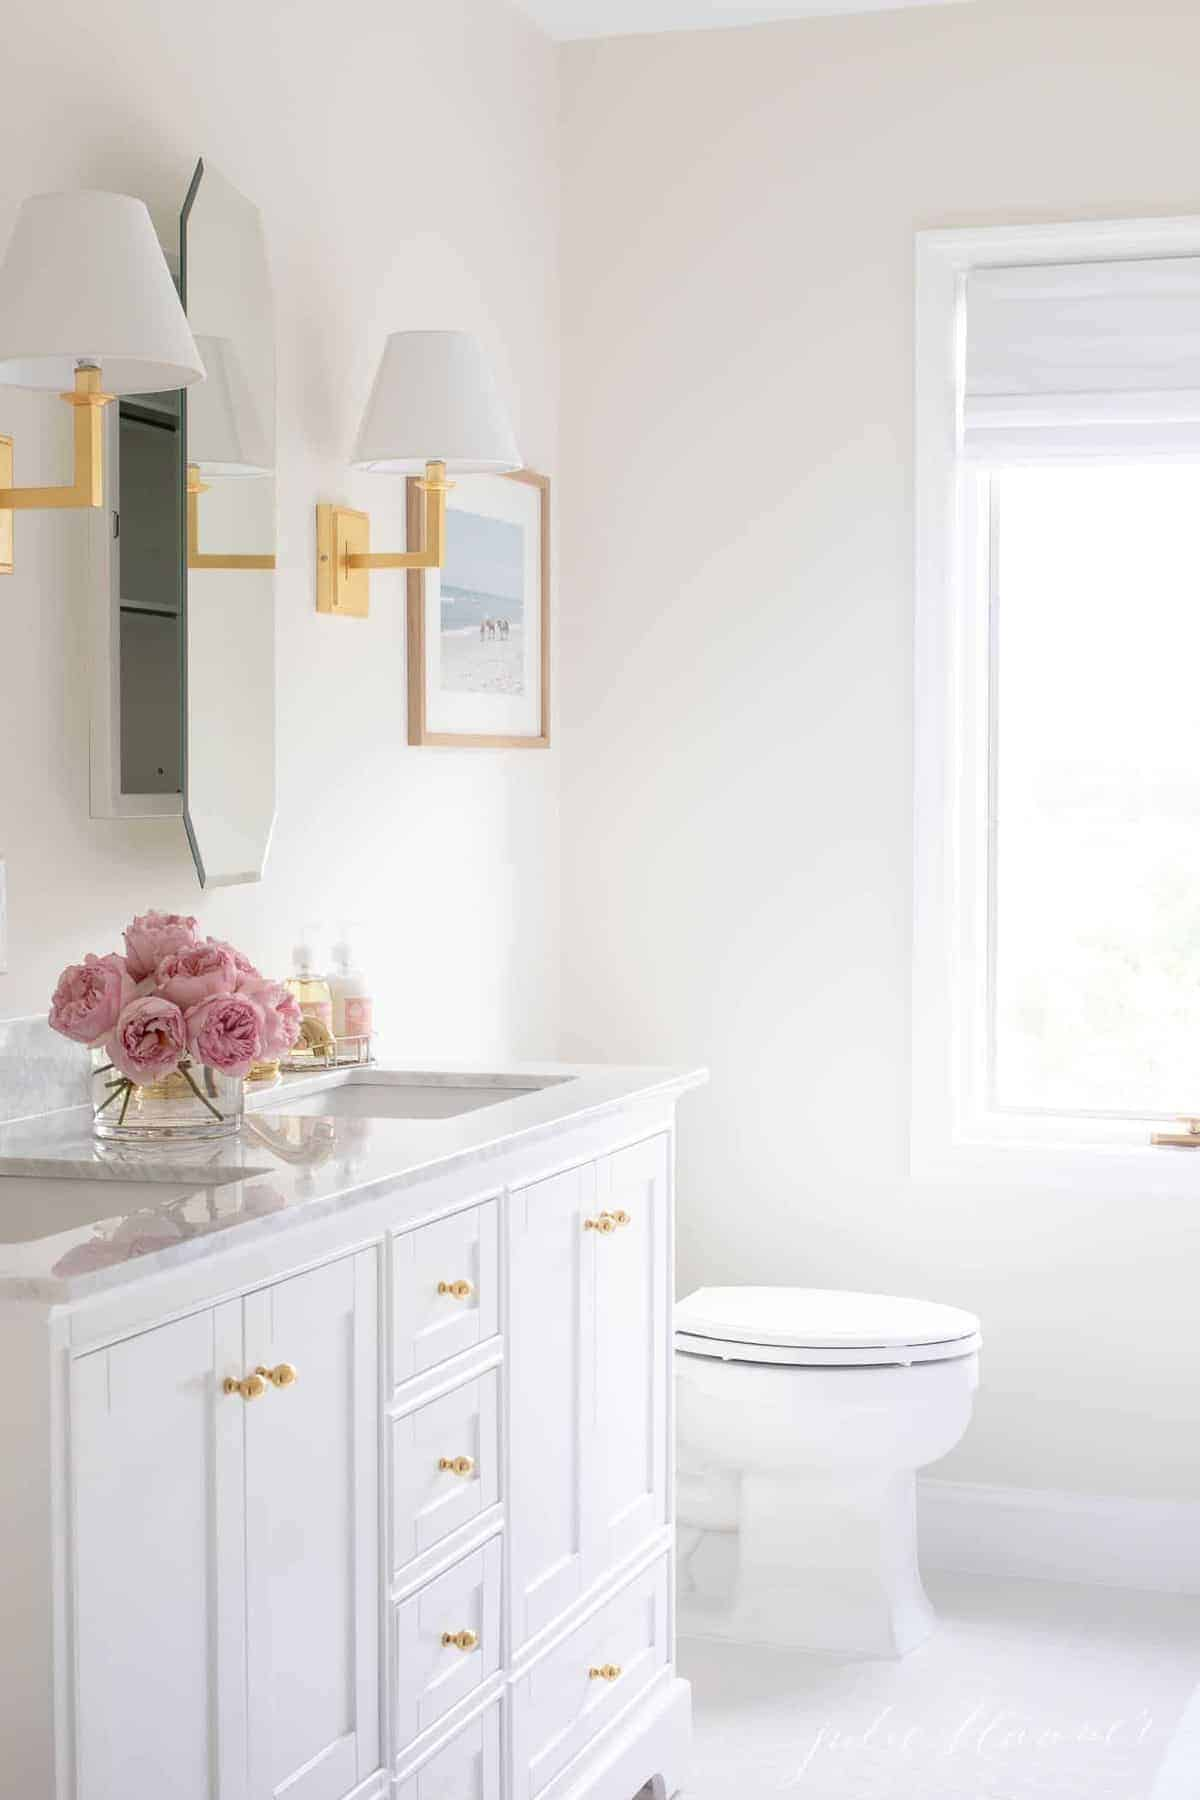 A white bathroom with white trim.